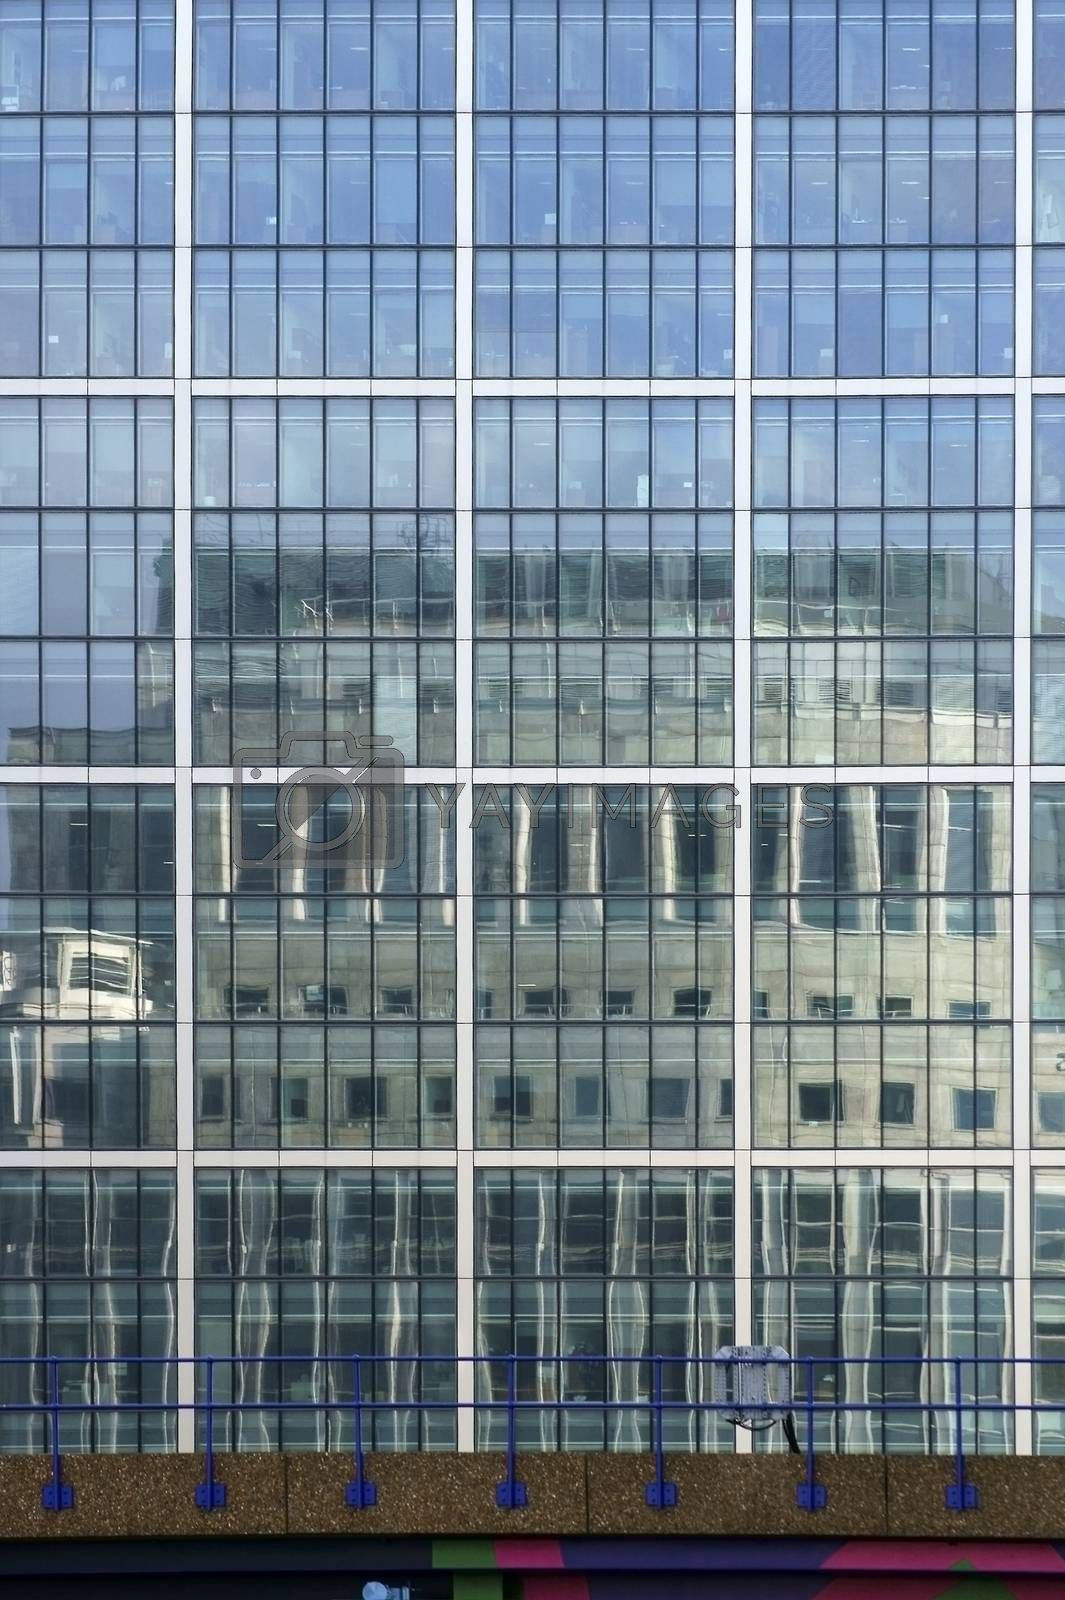 Royalty free image of Reflecting skyscraper facade by ginton